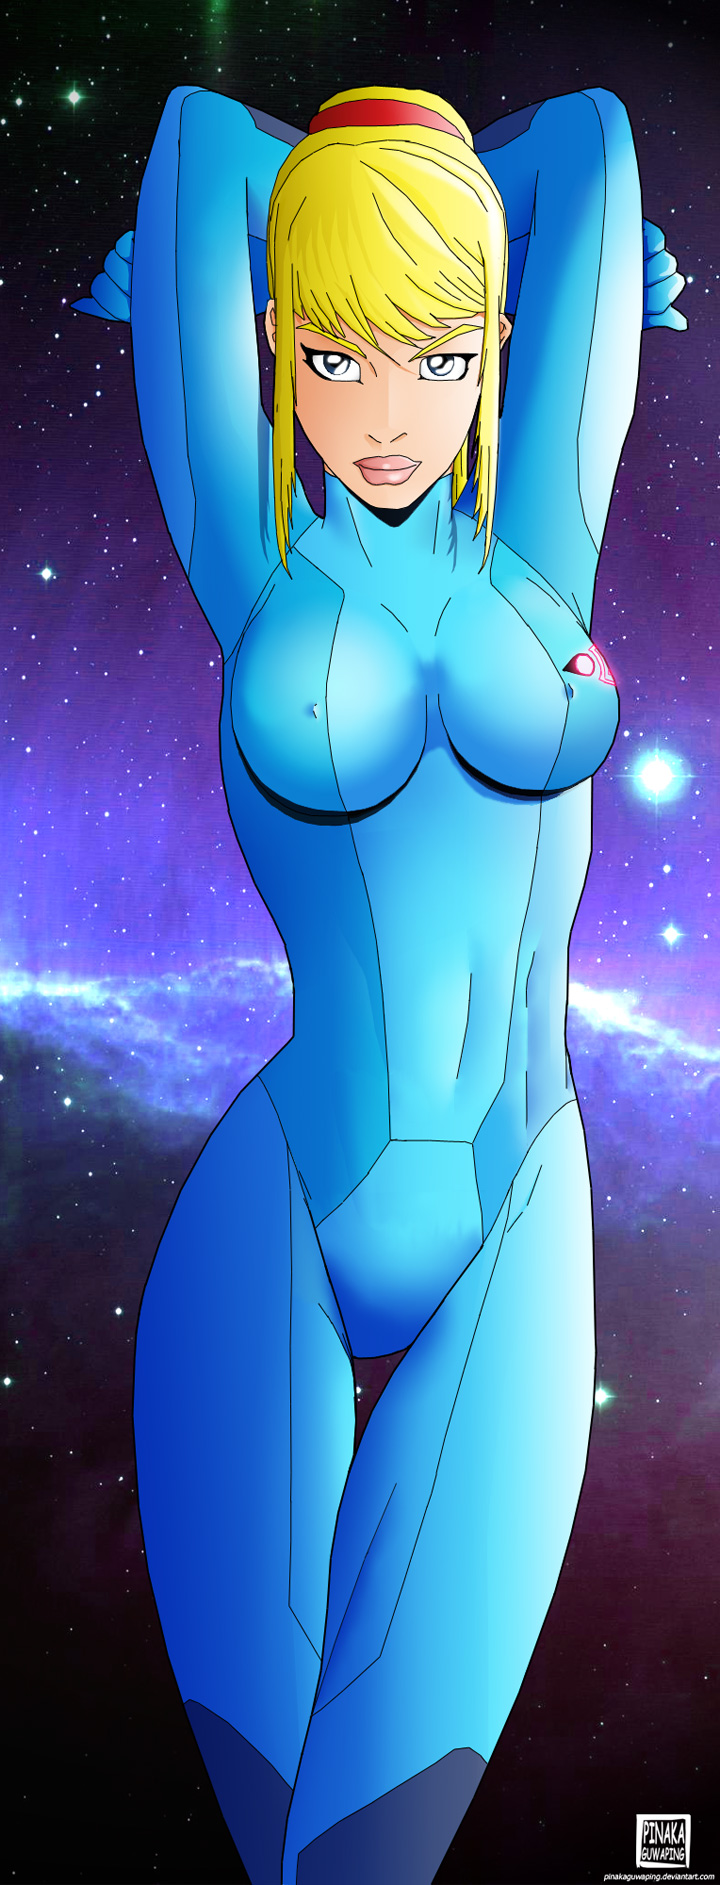 samus is naked